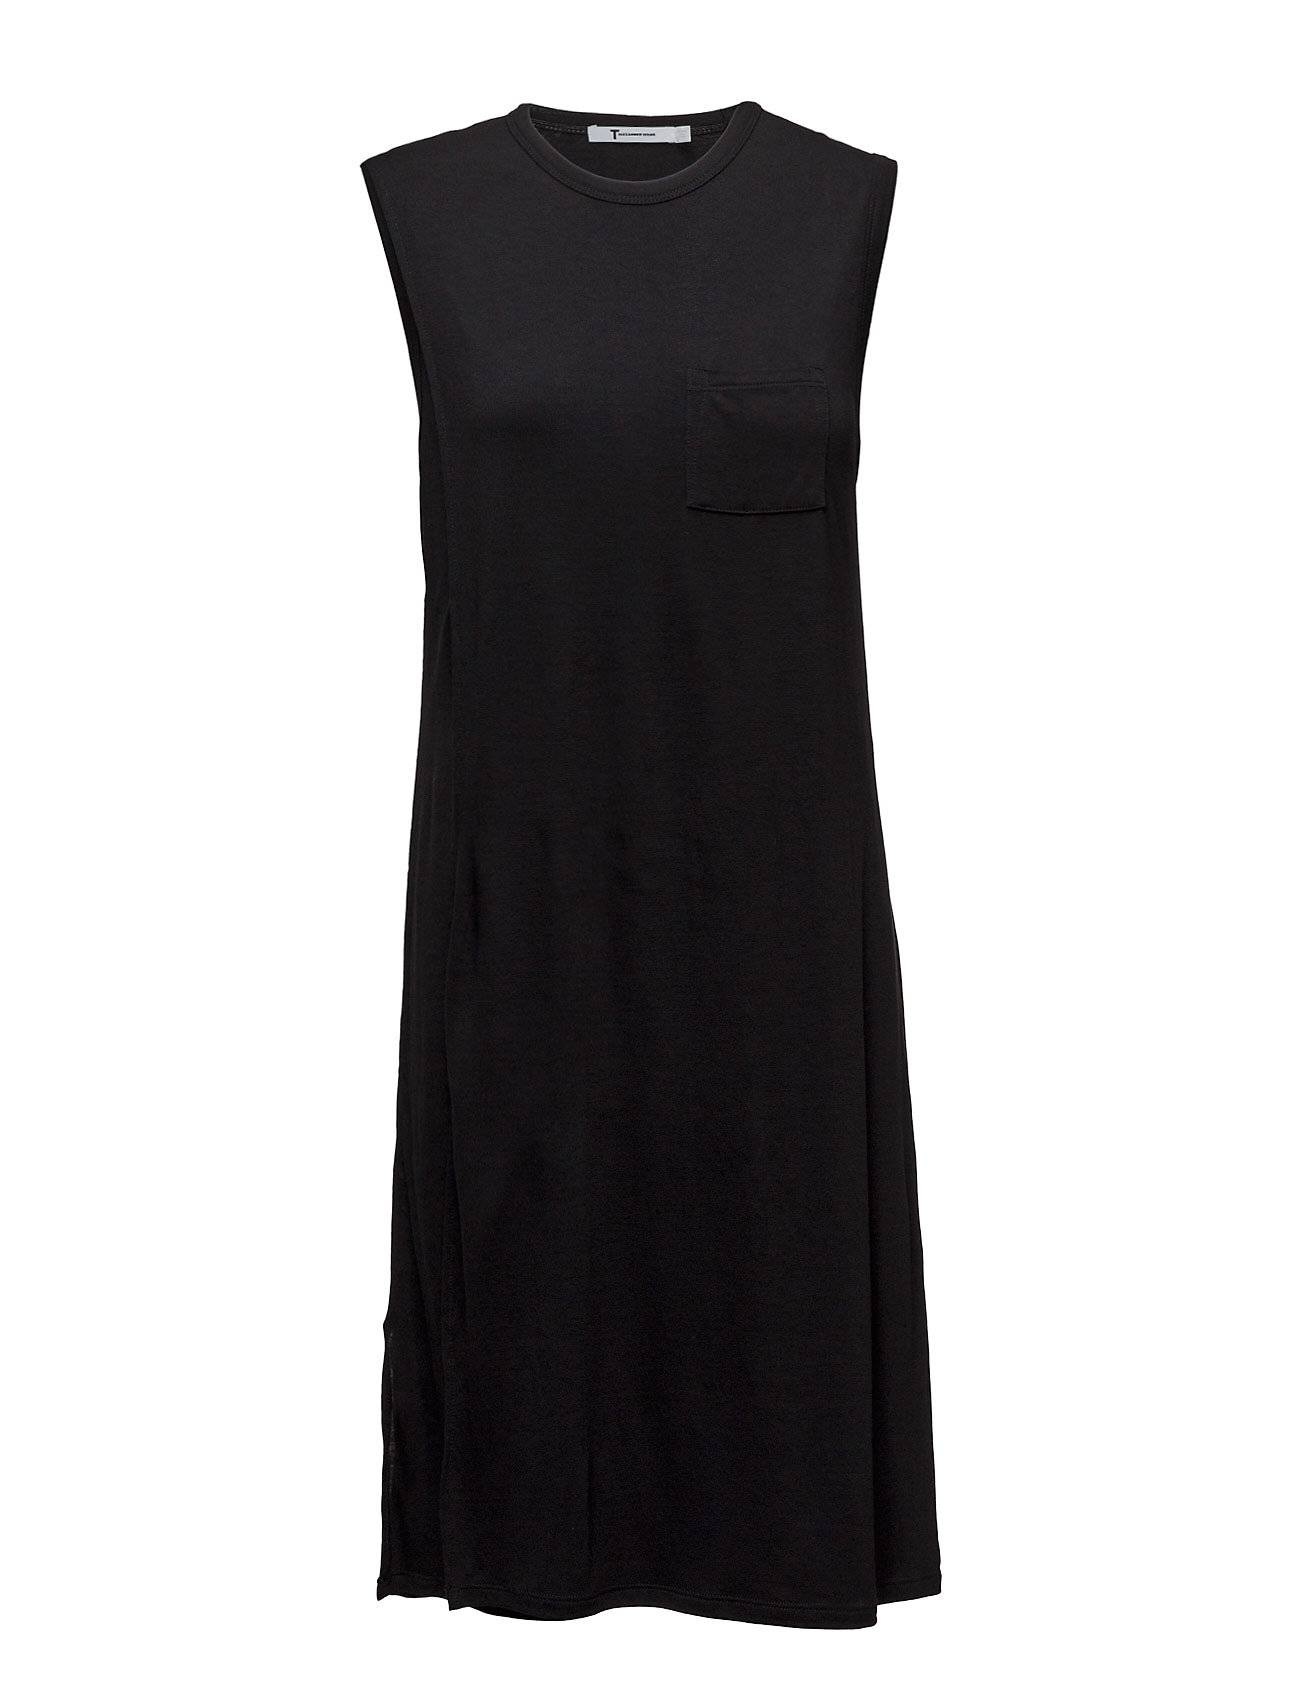 T by Alexander Wang Classic Crewneck Overlapdress With Chest Pocket